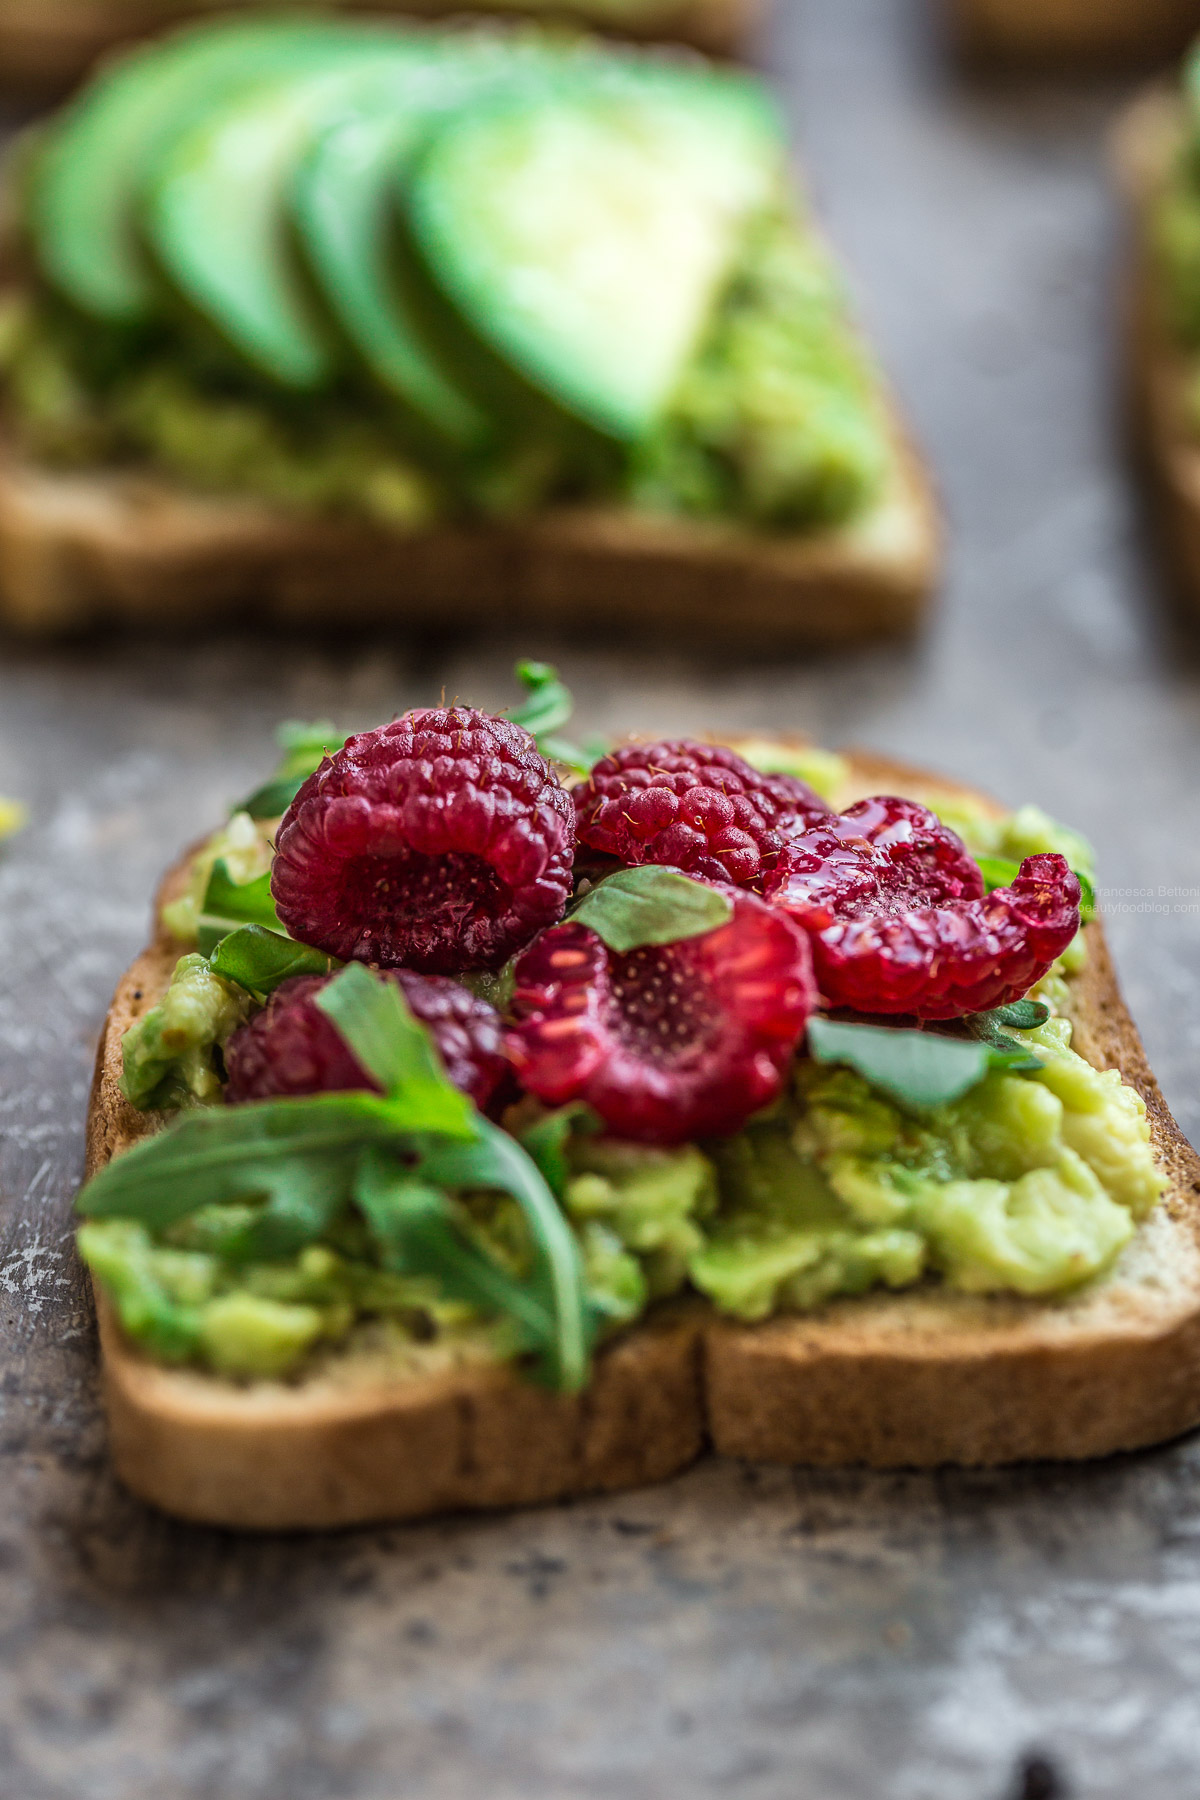 glutenfree vegan avocado toast recipe with raspberry and balsamic vinegar - ricetta avocado toast vegan senza glutine con lamponi e aceto balsamico